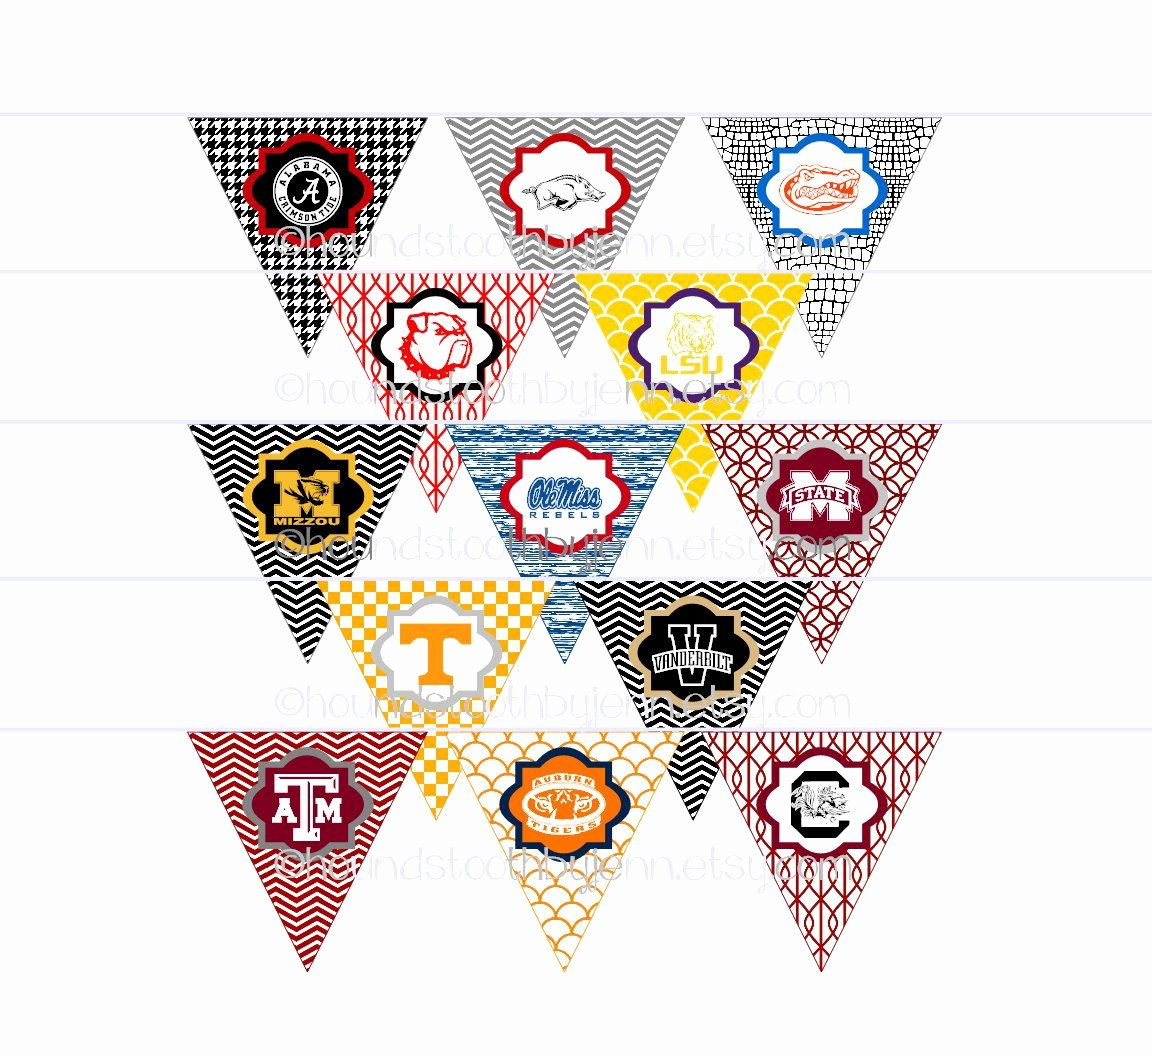 College Pennants Printable Awesome Diy Printables Pennants Collegiate Tailgate Digital